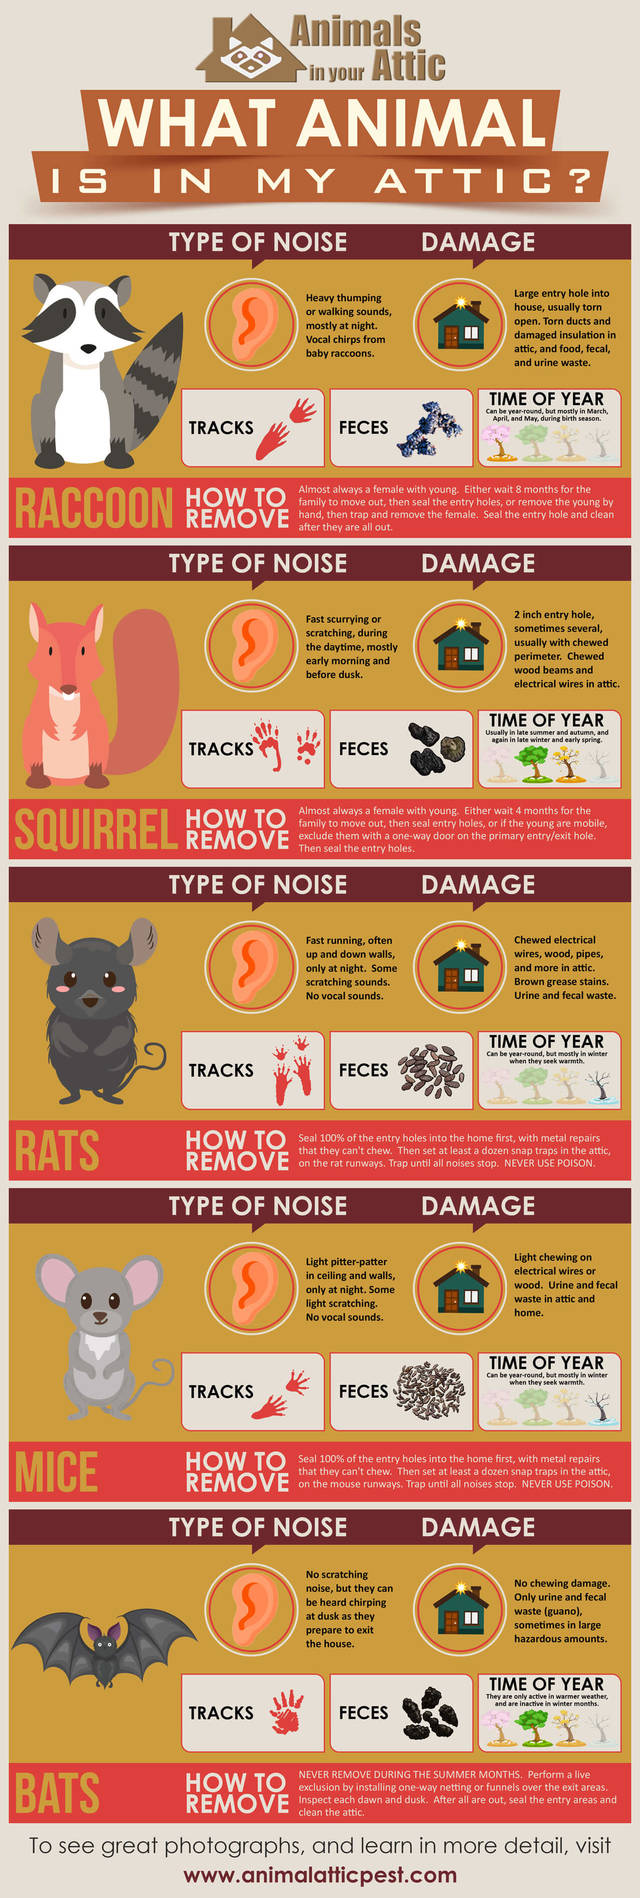 What animal is in my attic infographic